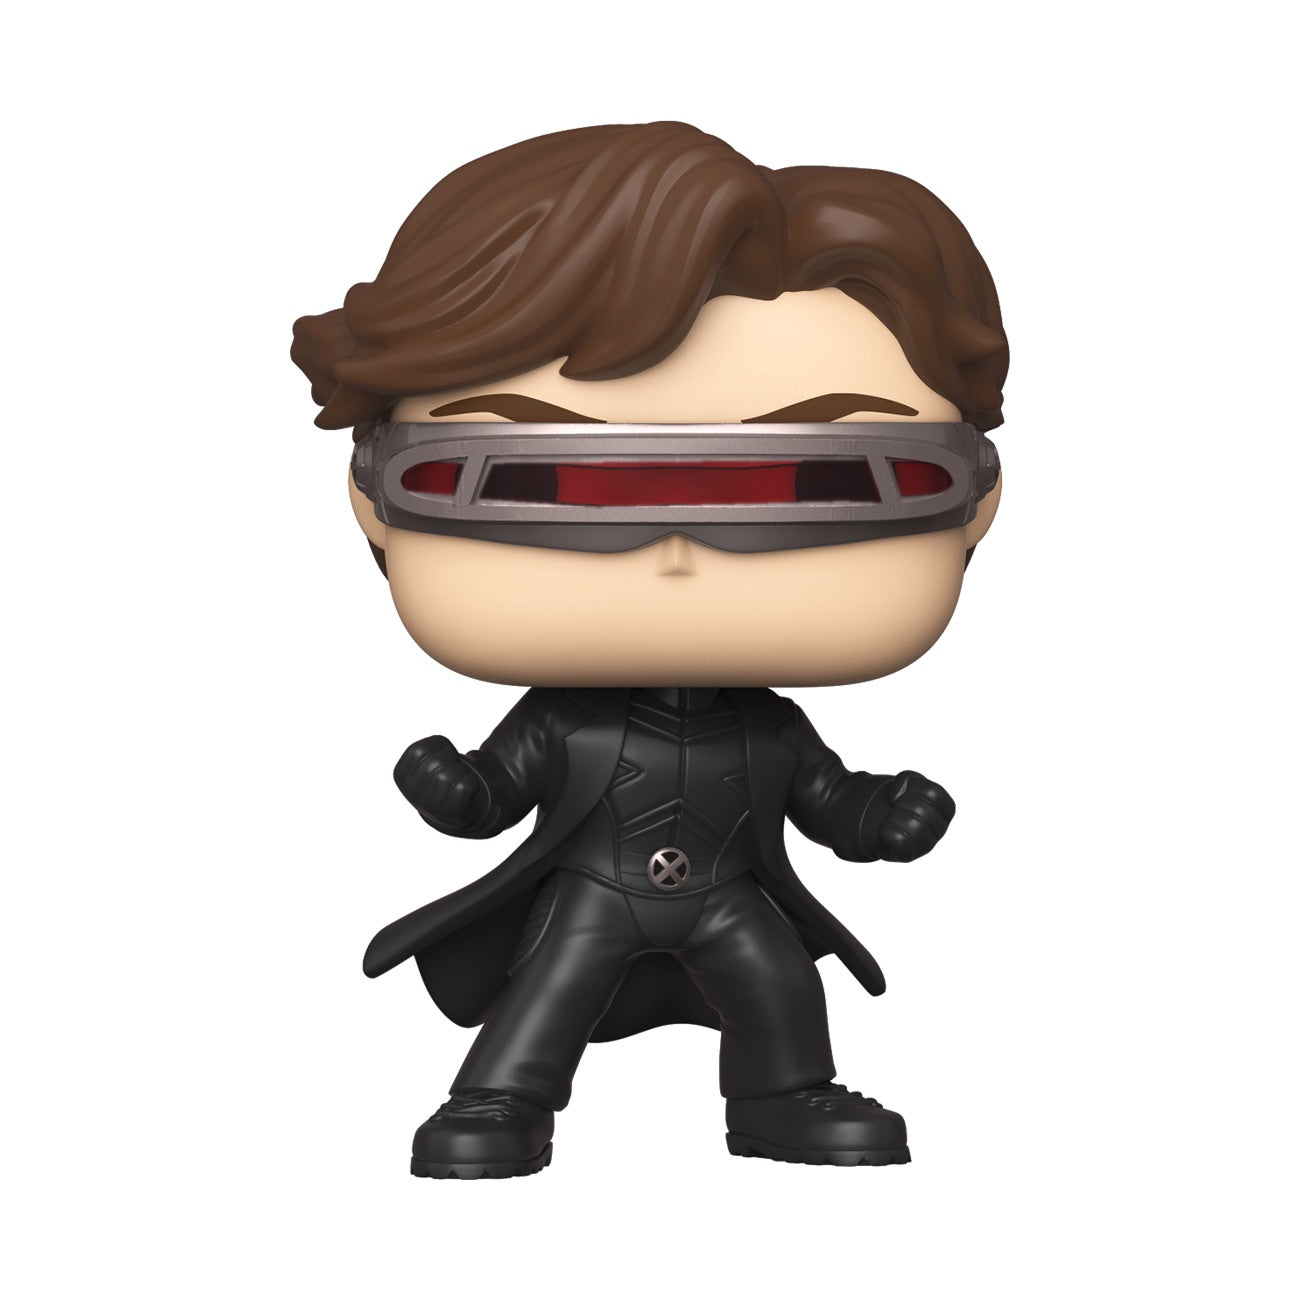 Marvel X-Men 20th Anniversary Cyclops